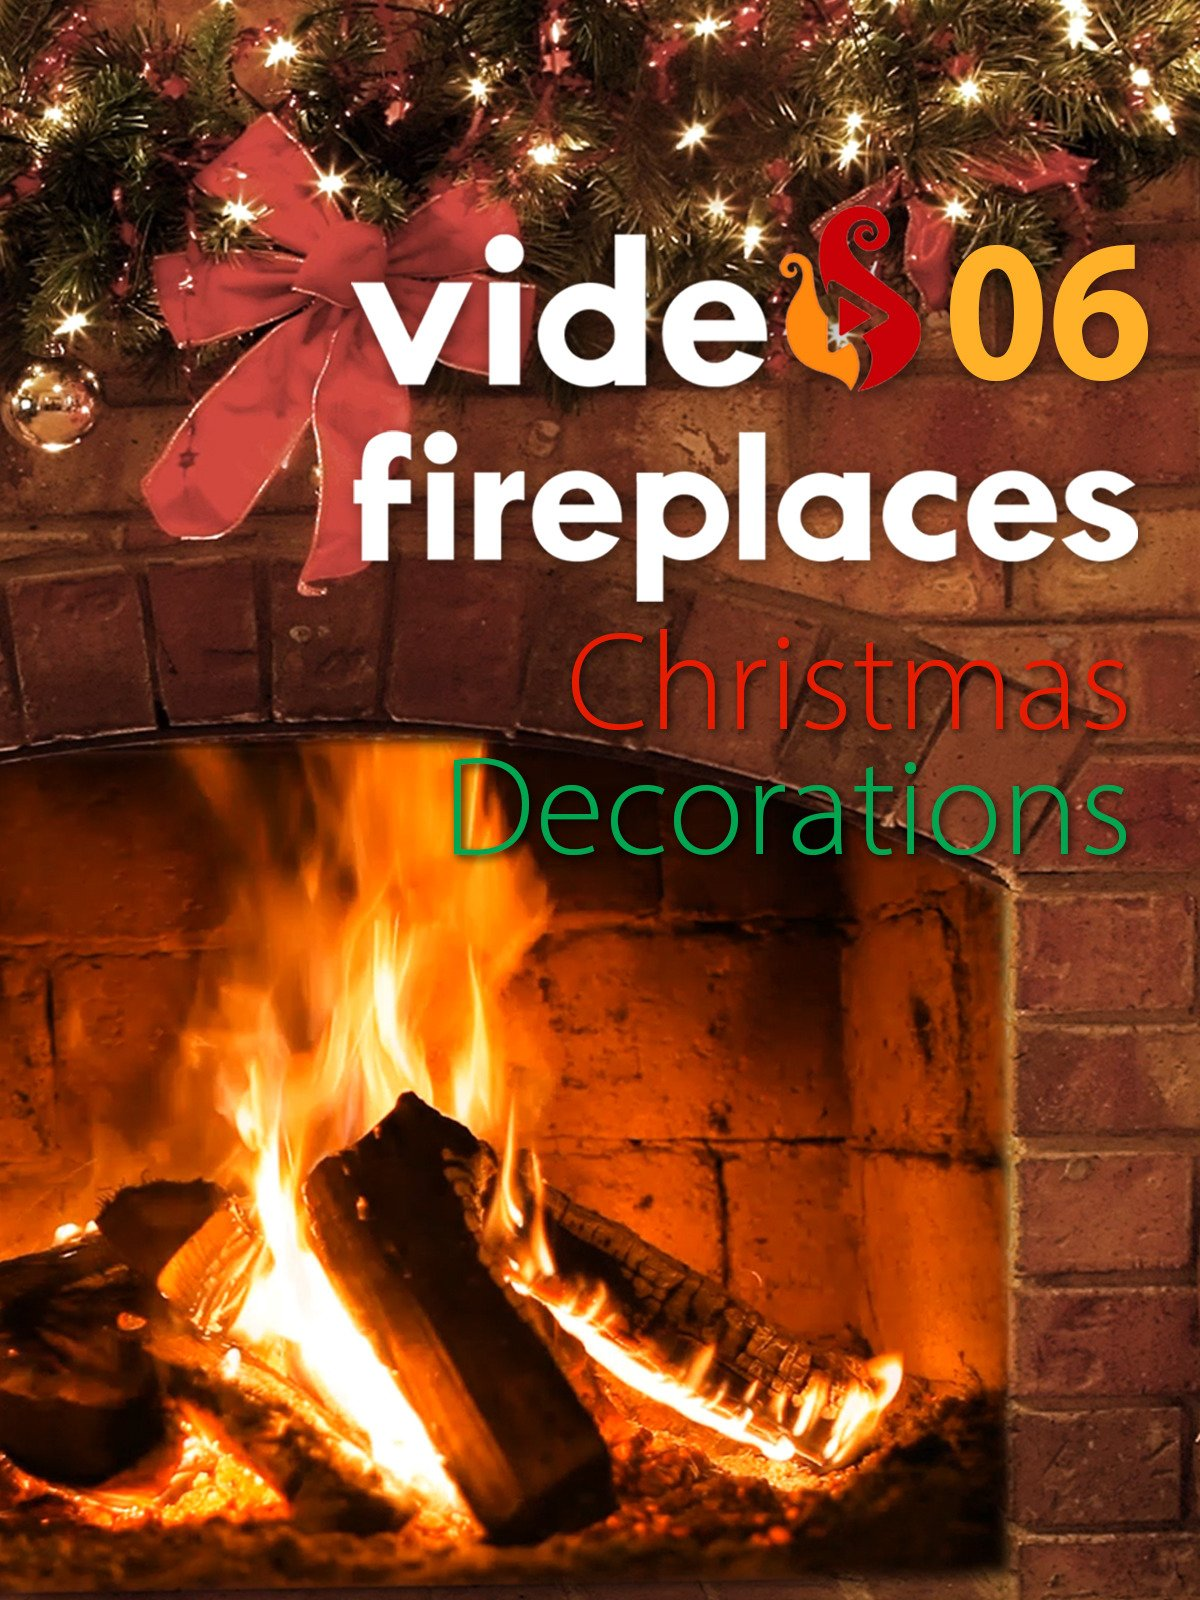 Video Fireplace 06 & Christmas Decorations